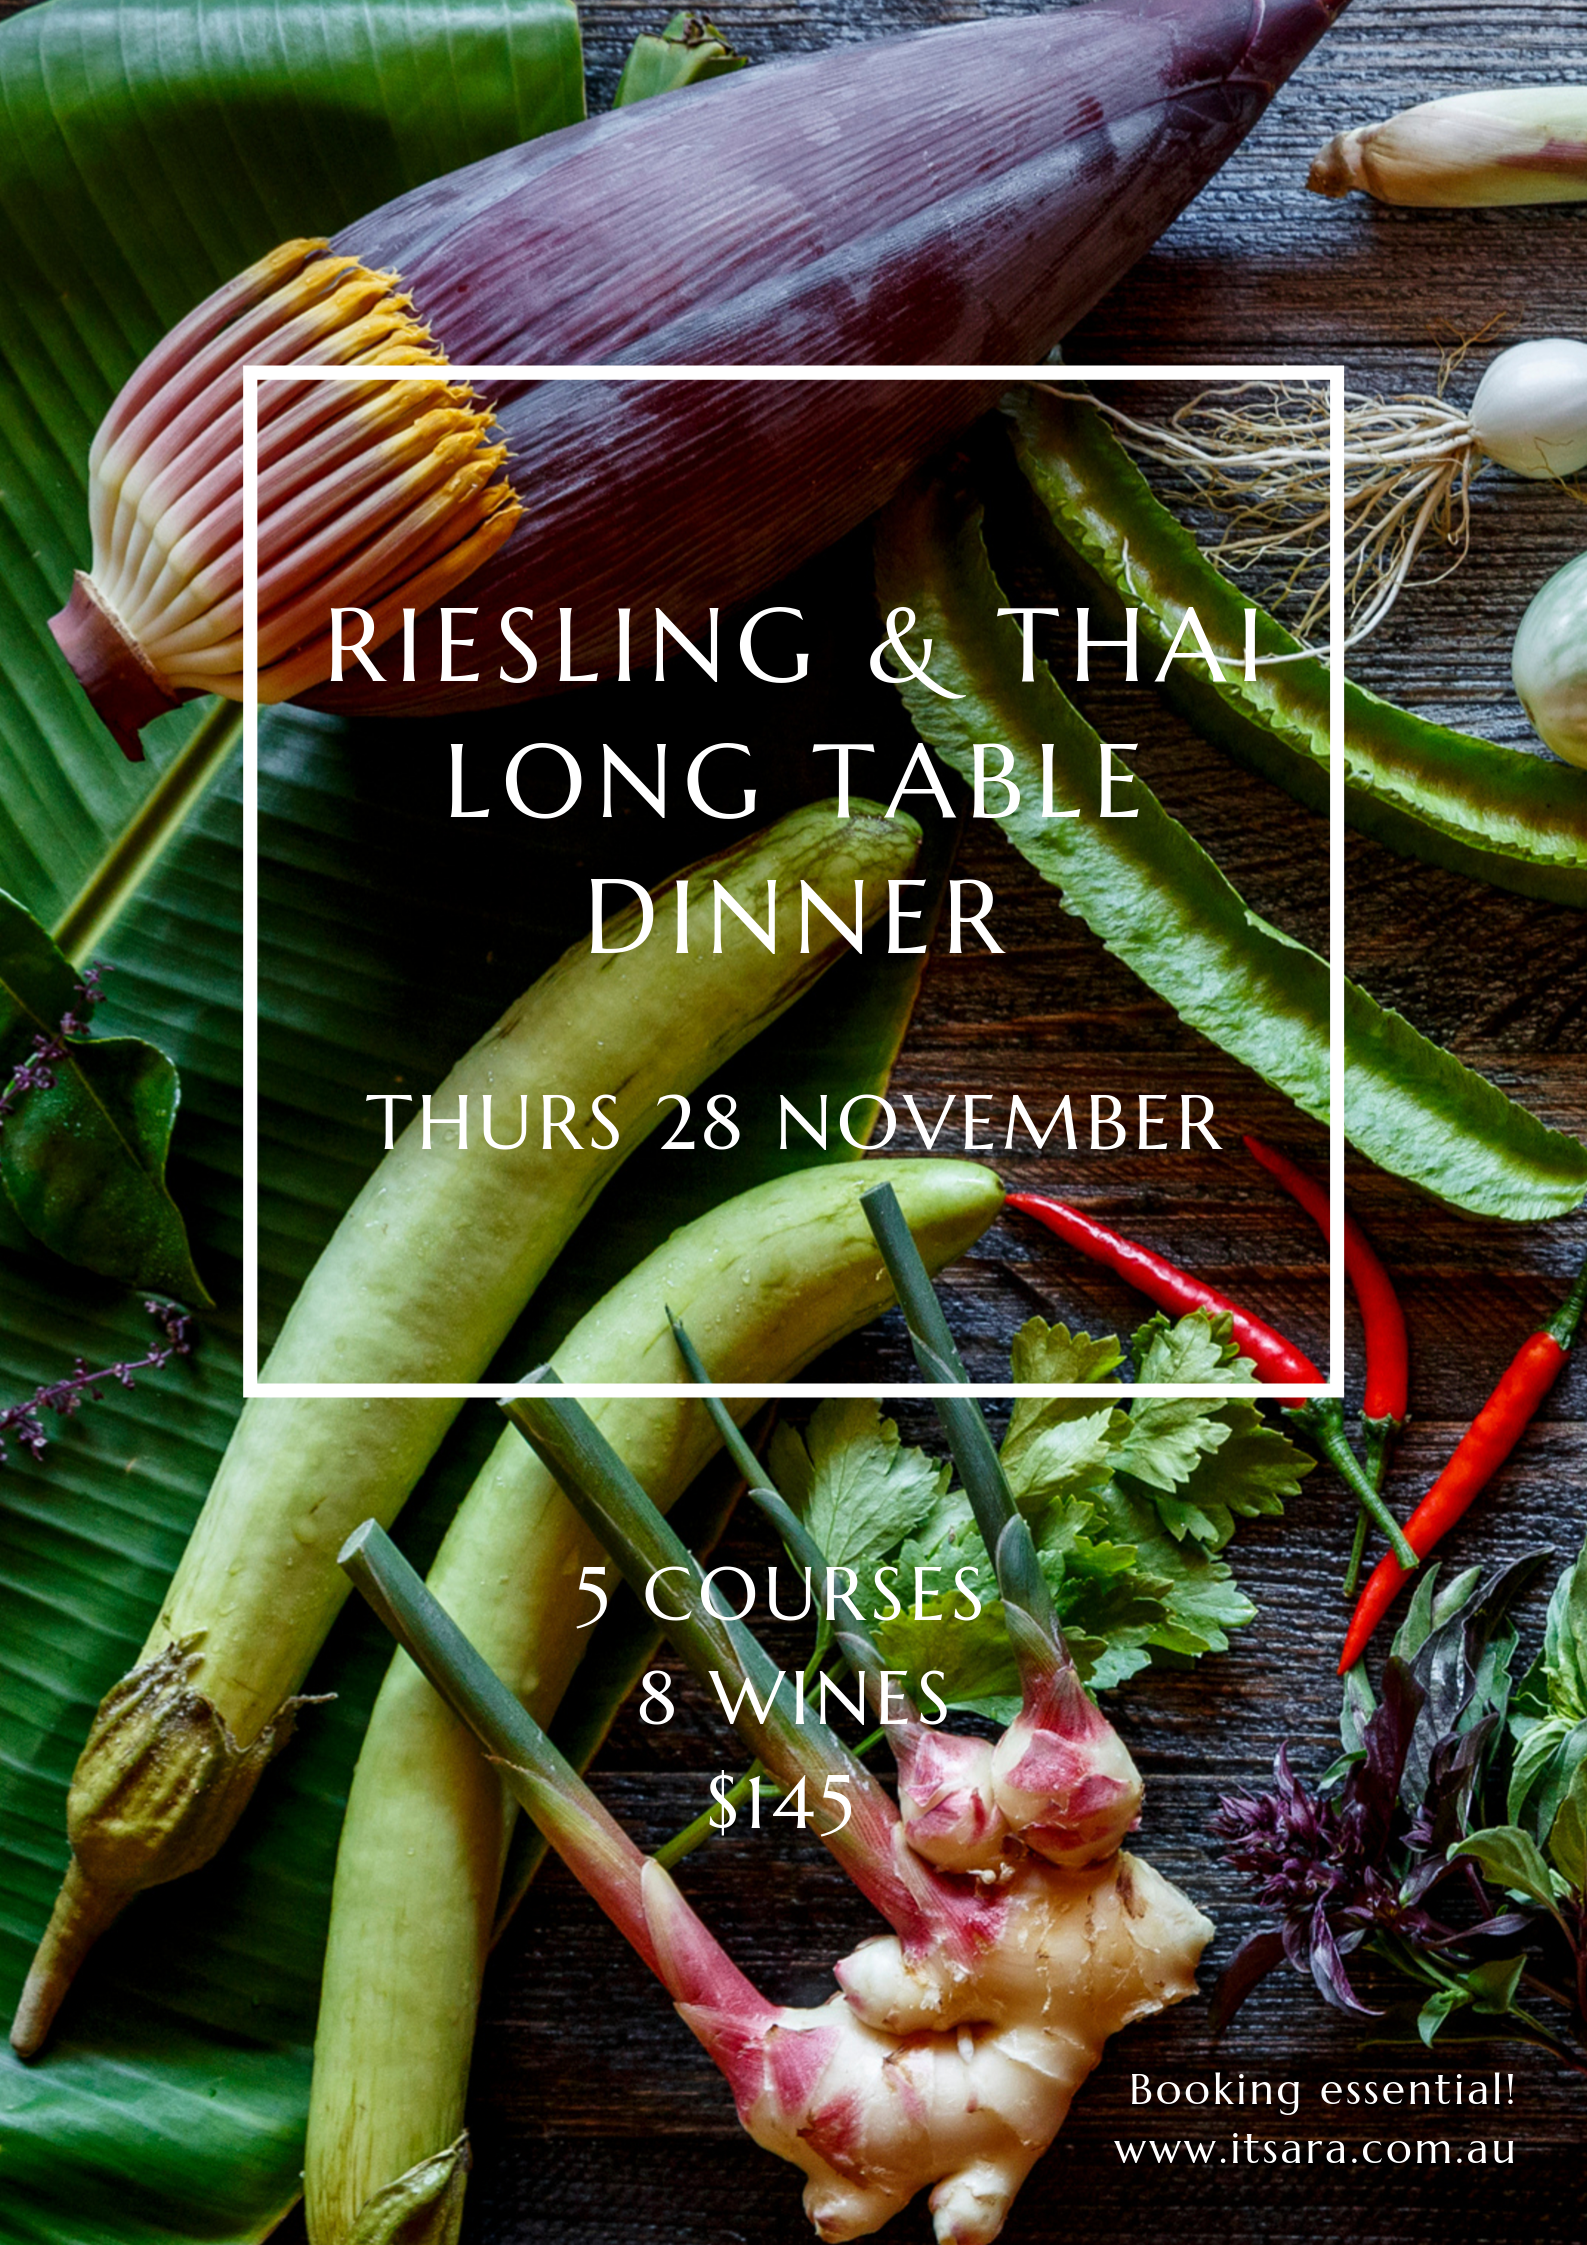 Itsara Riesling & Thai Long Table Dinner with Anja Lewis of Canny Grapes Perth Nedlands